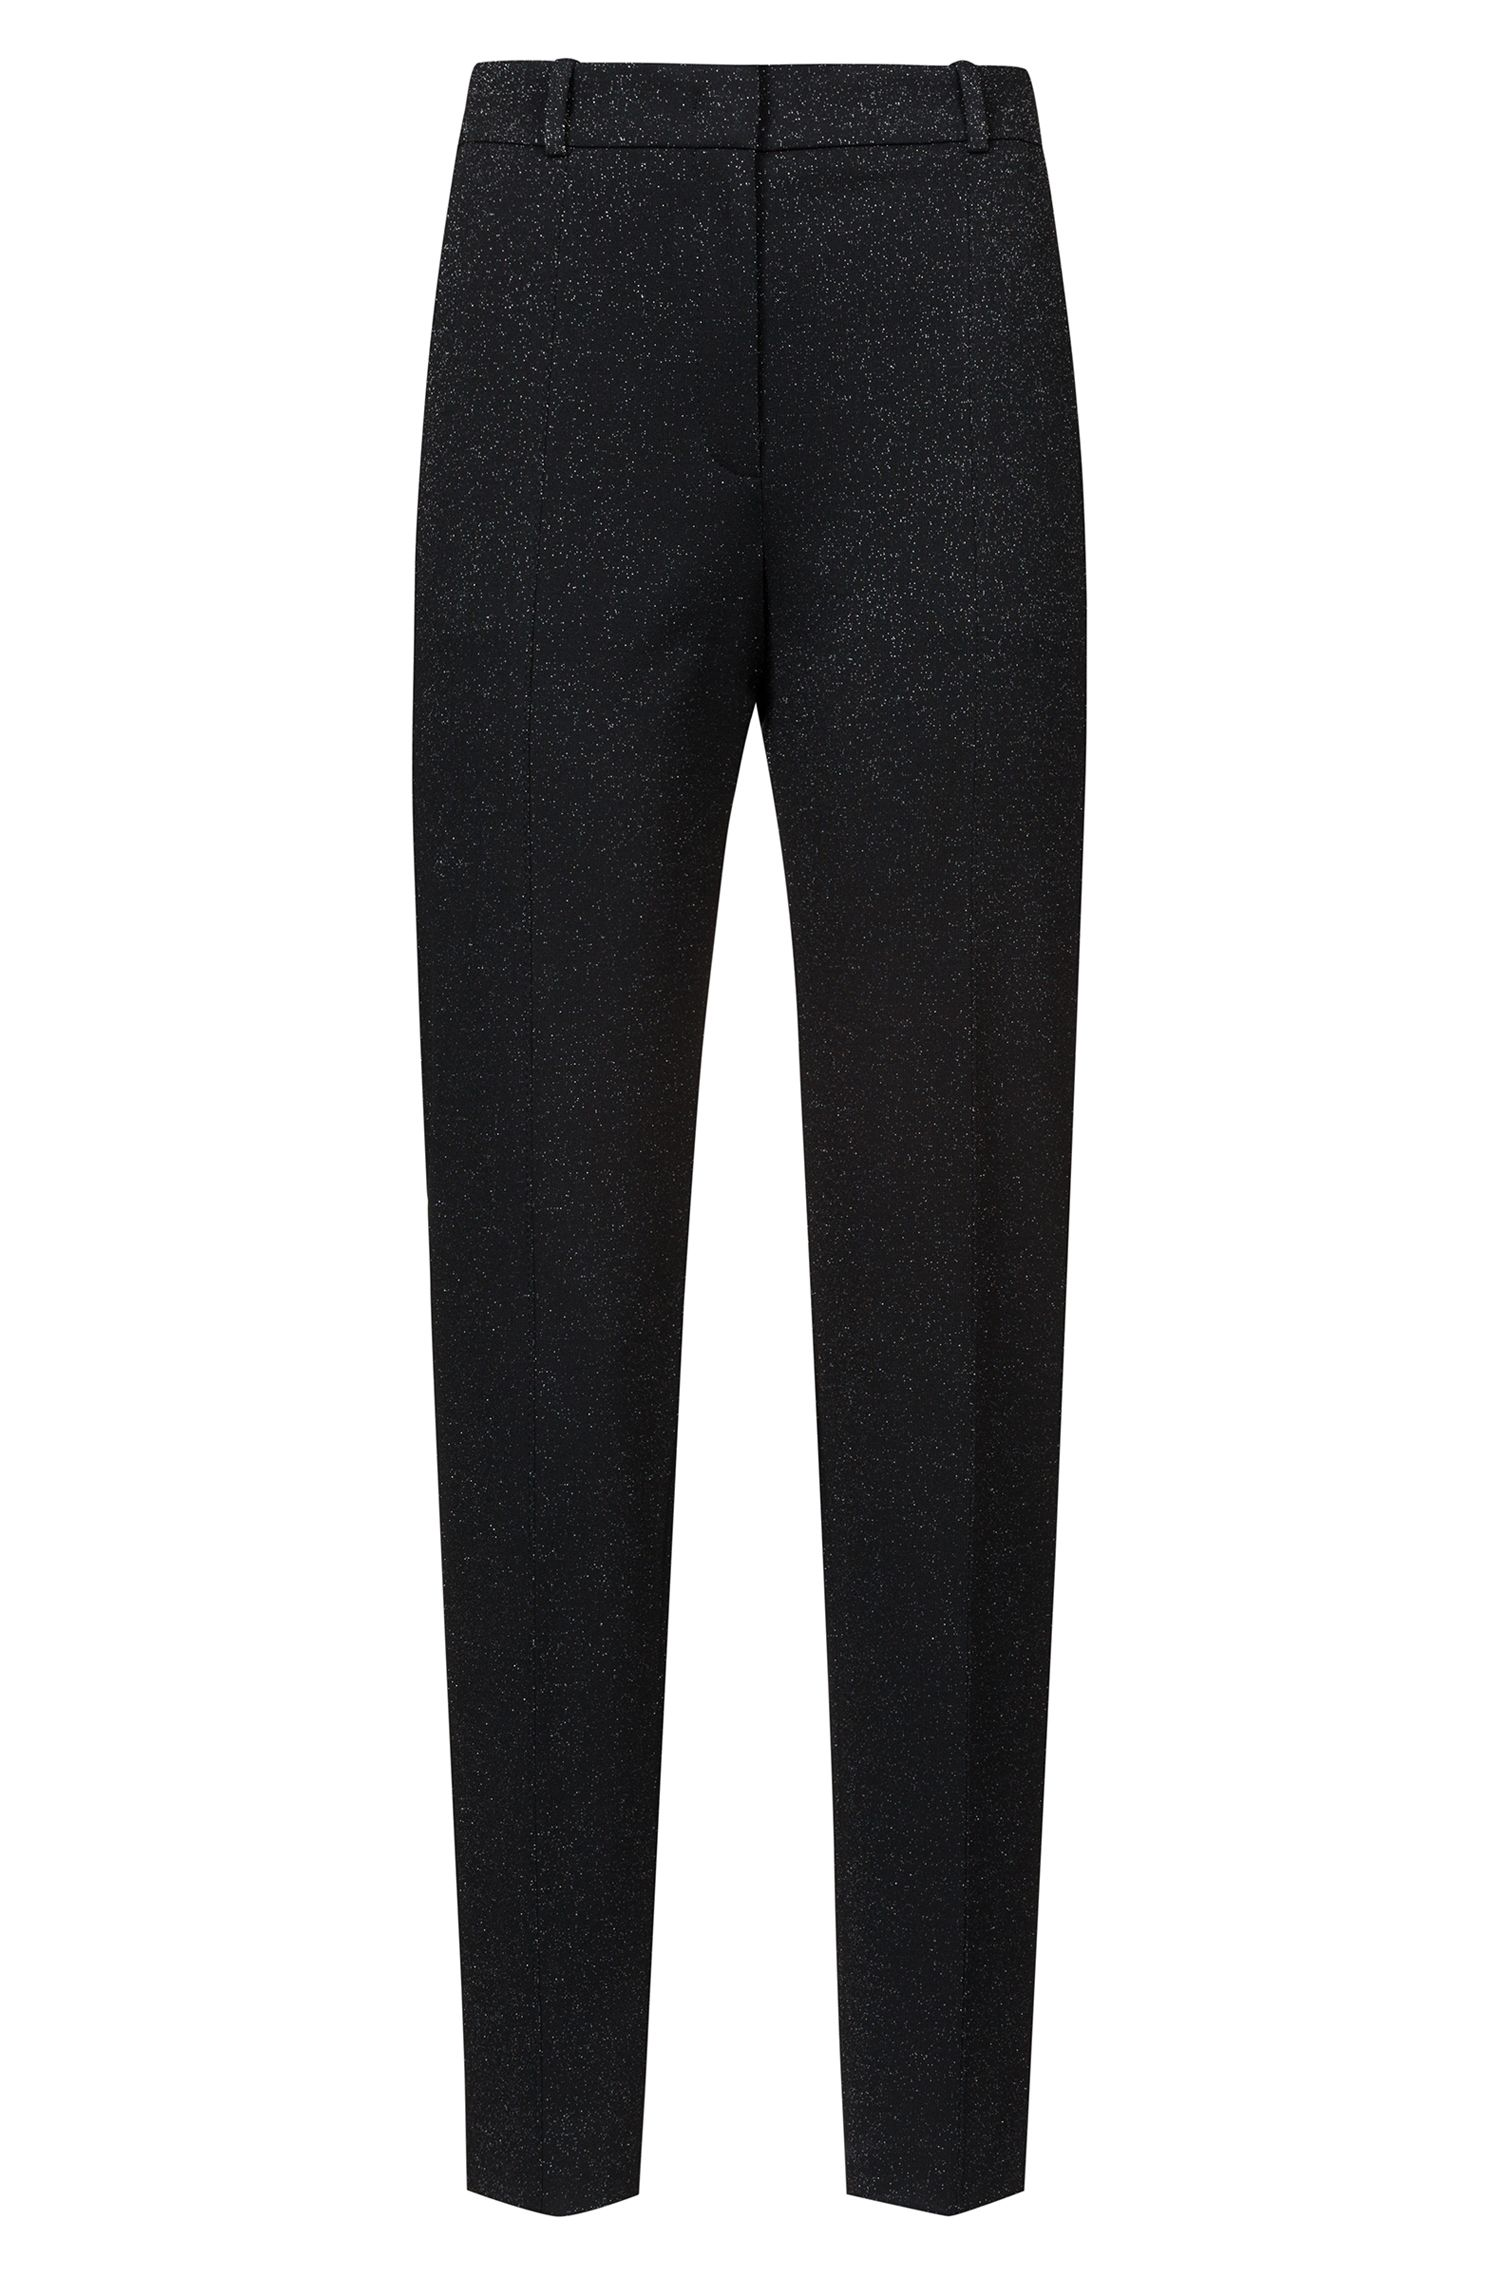 Regular-fit trousers in sparkly stretch-jersey fabric, Patterned